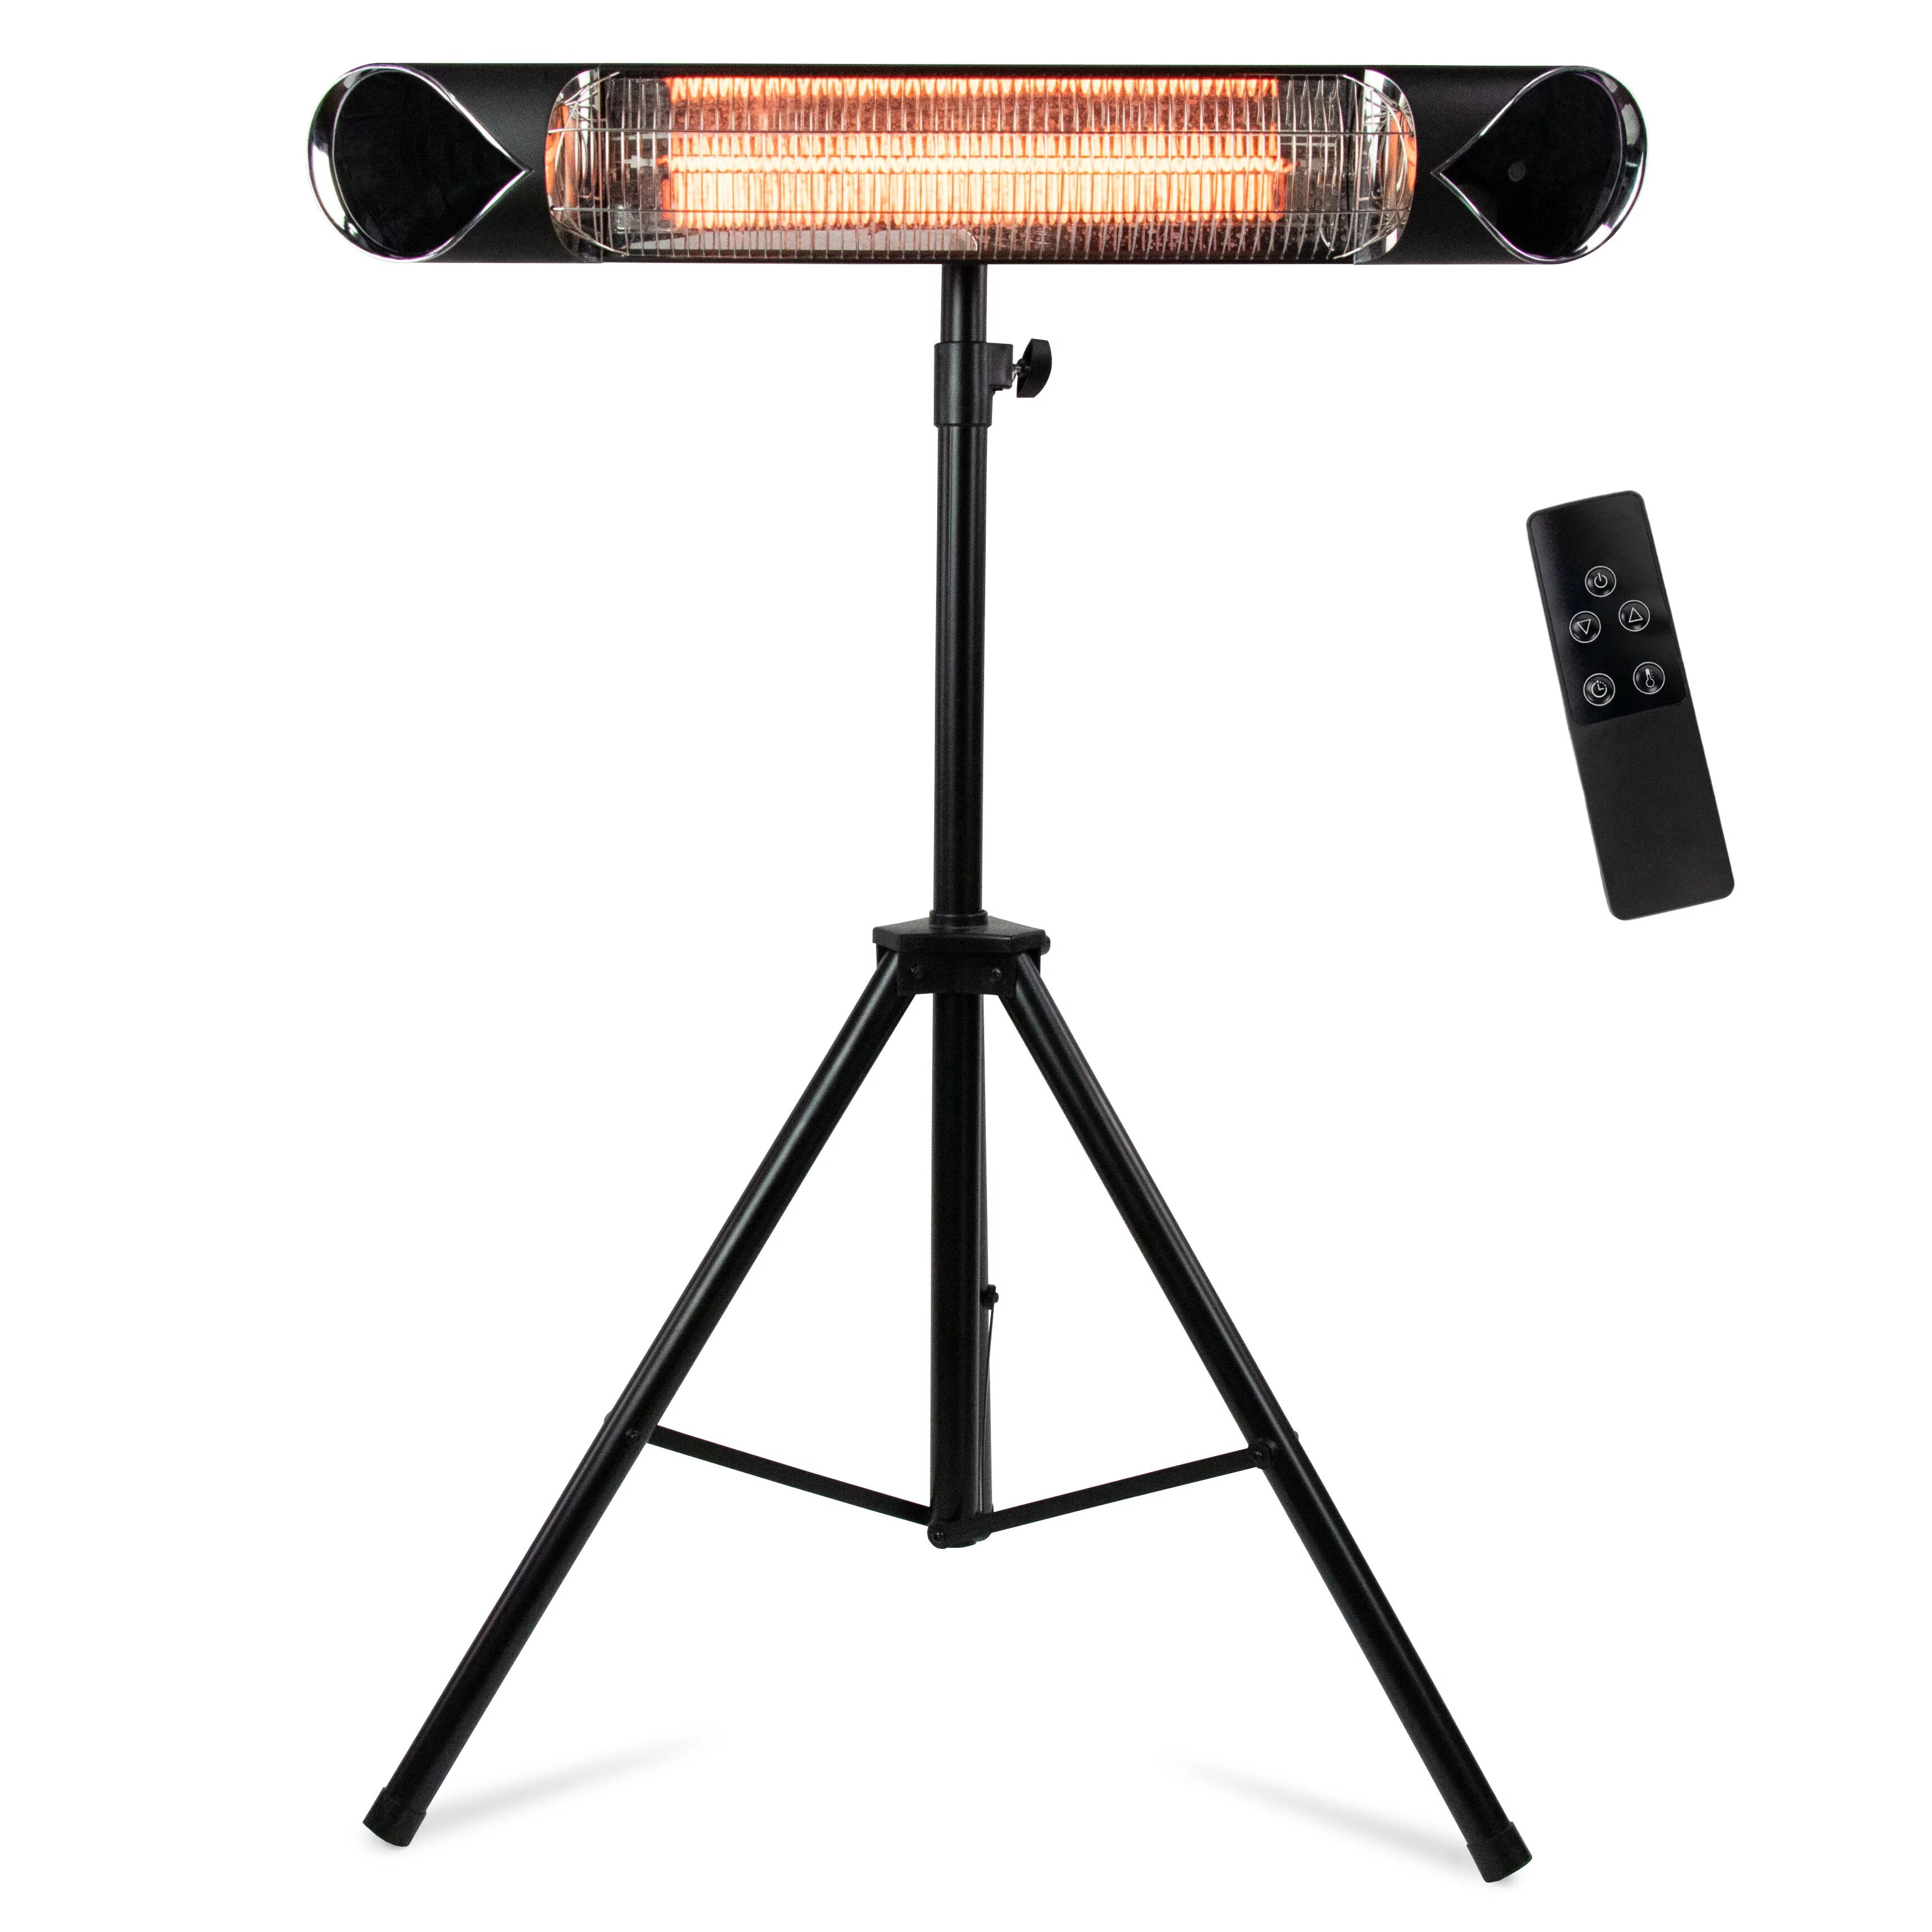 briza patio heater infrared patio heater for indoor outdoor use 1500watt mount to ceiling wall